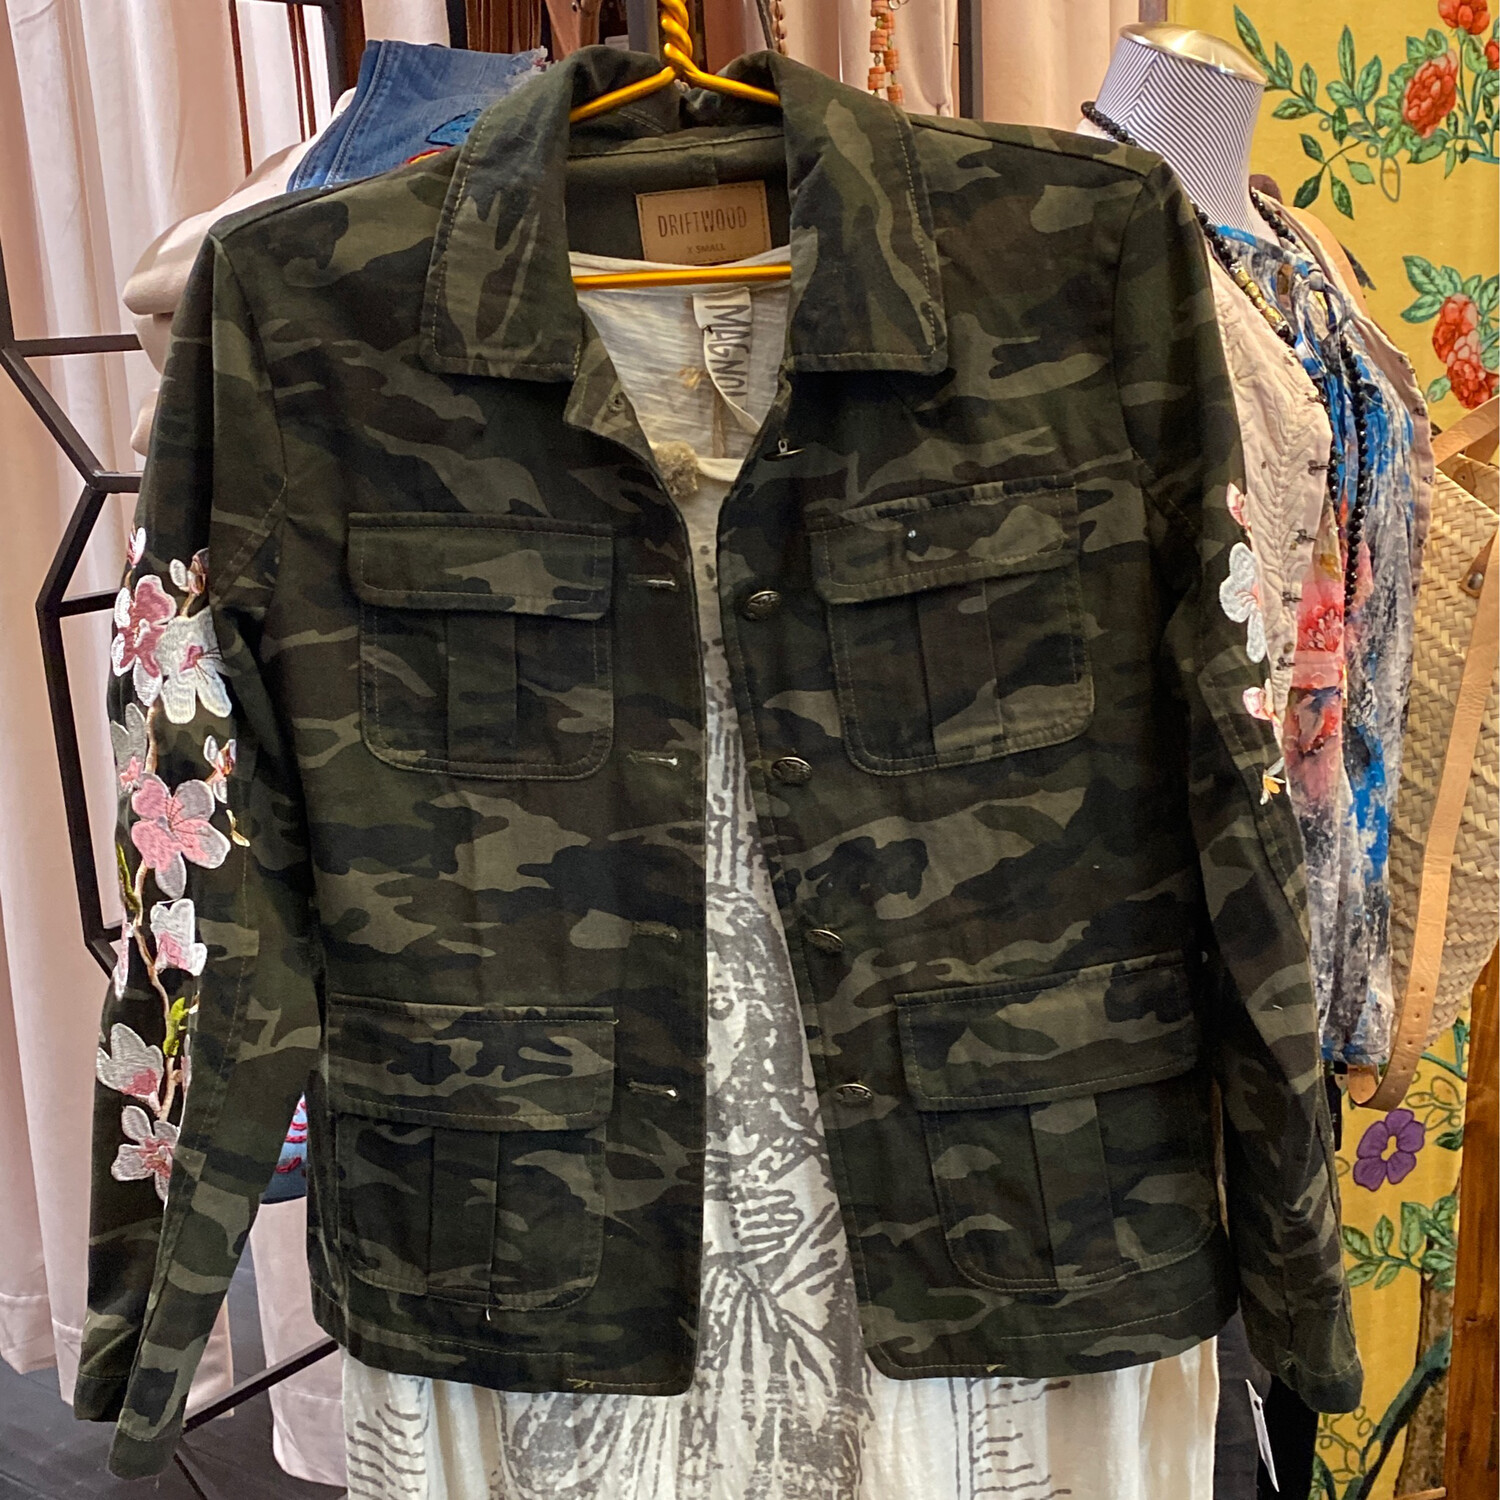 Driftwood Camo Embroidered Jacket XS